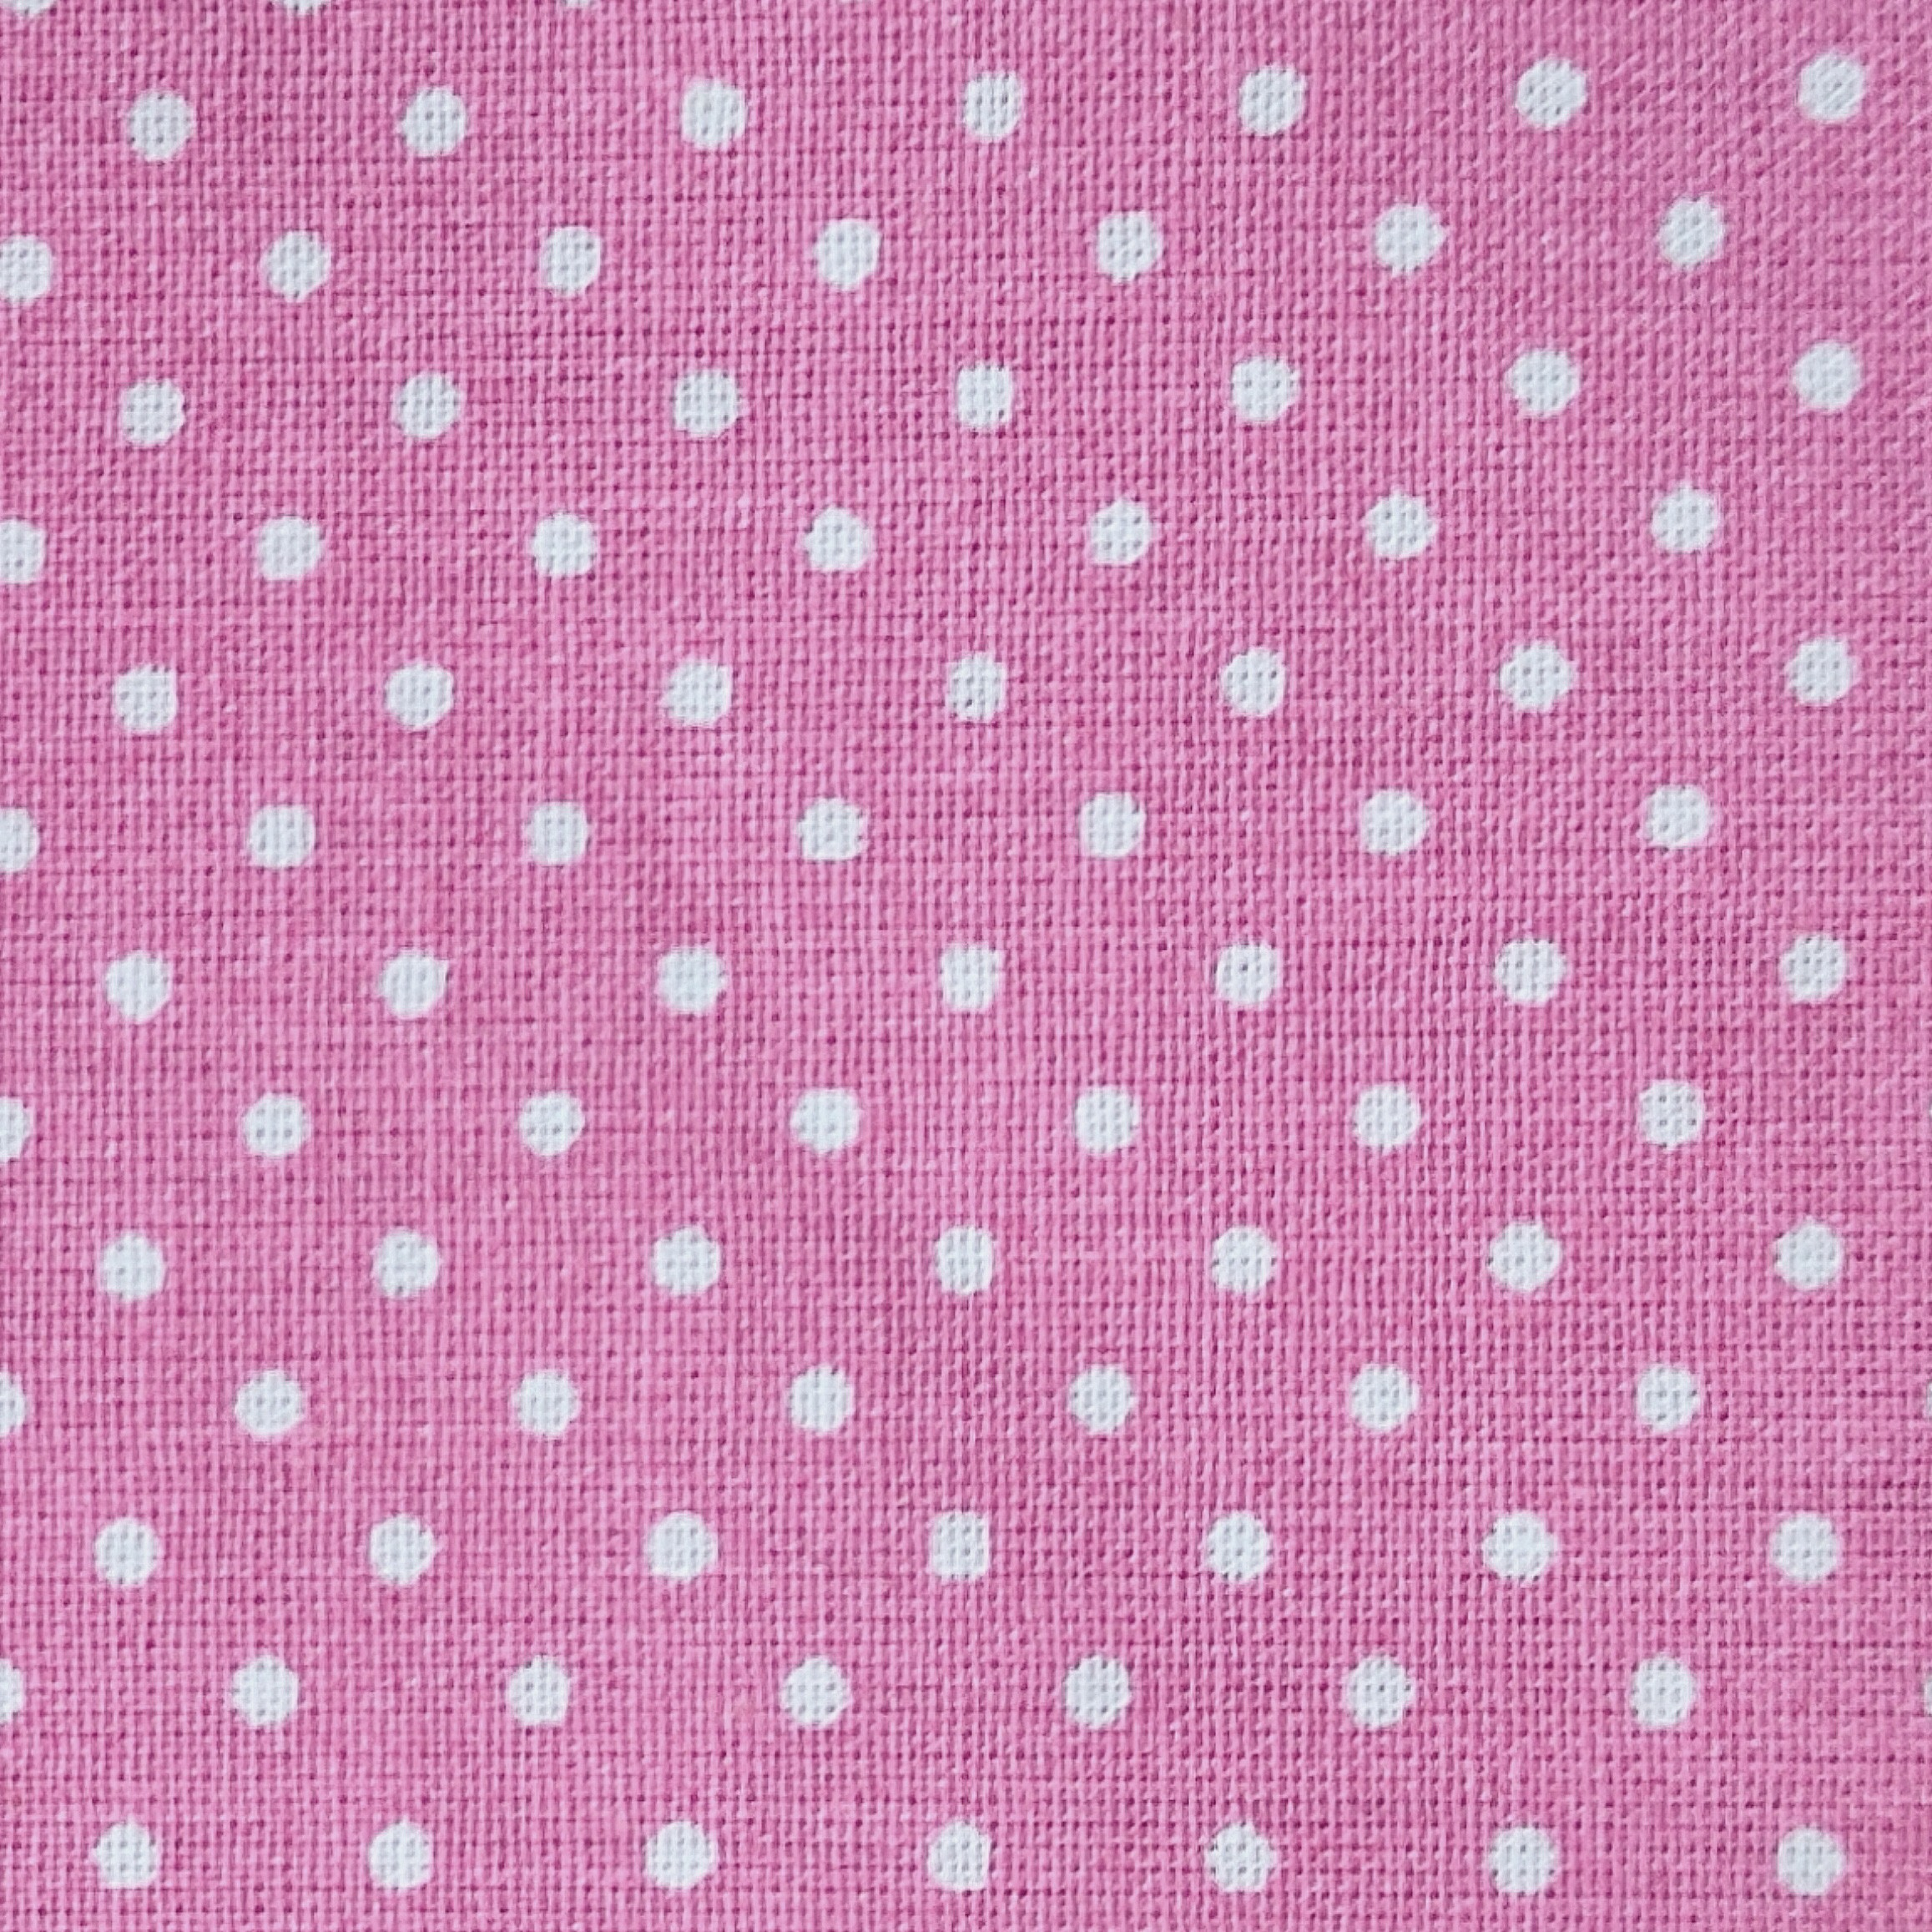 Pink with dots